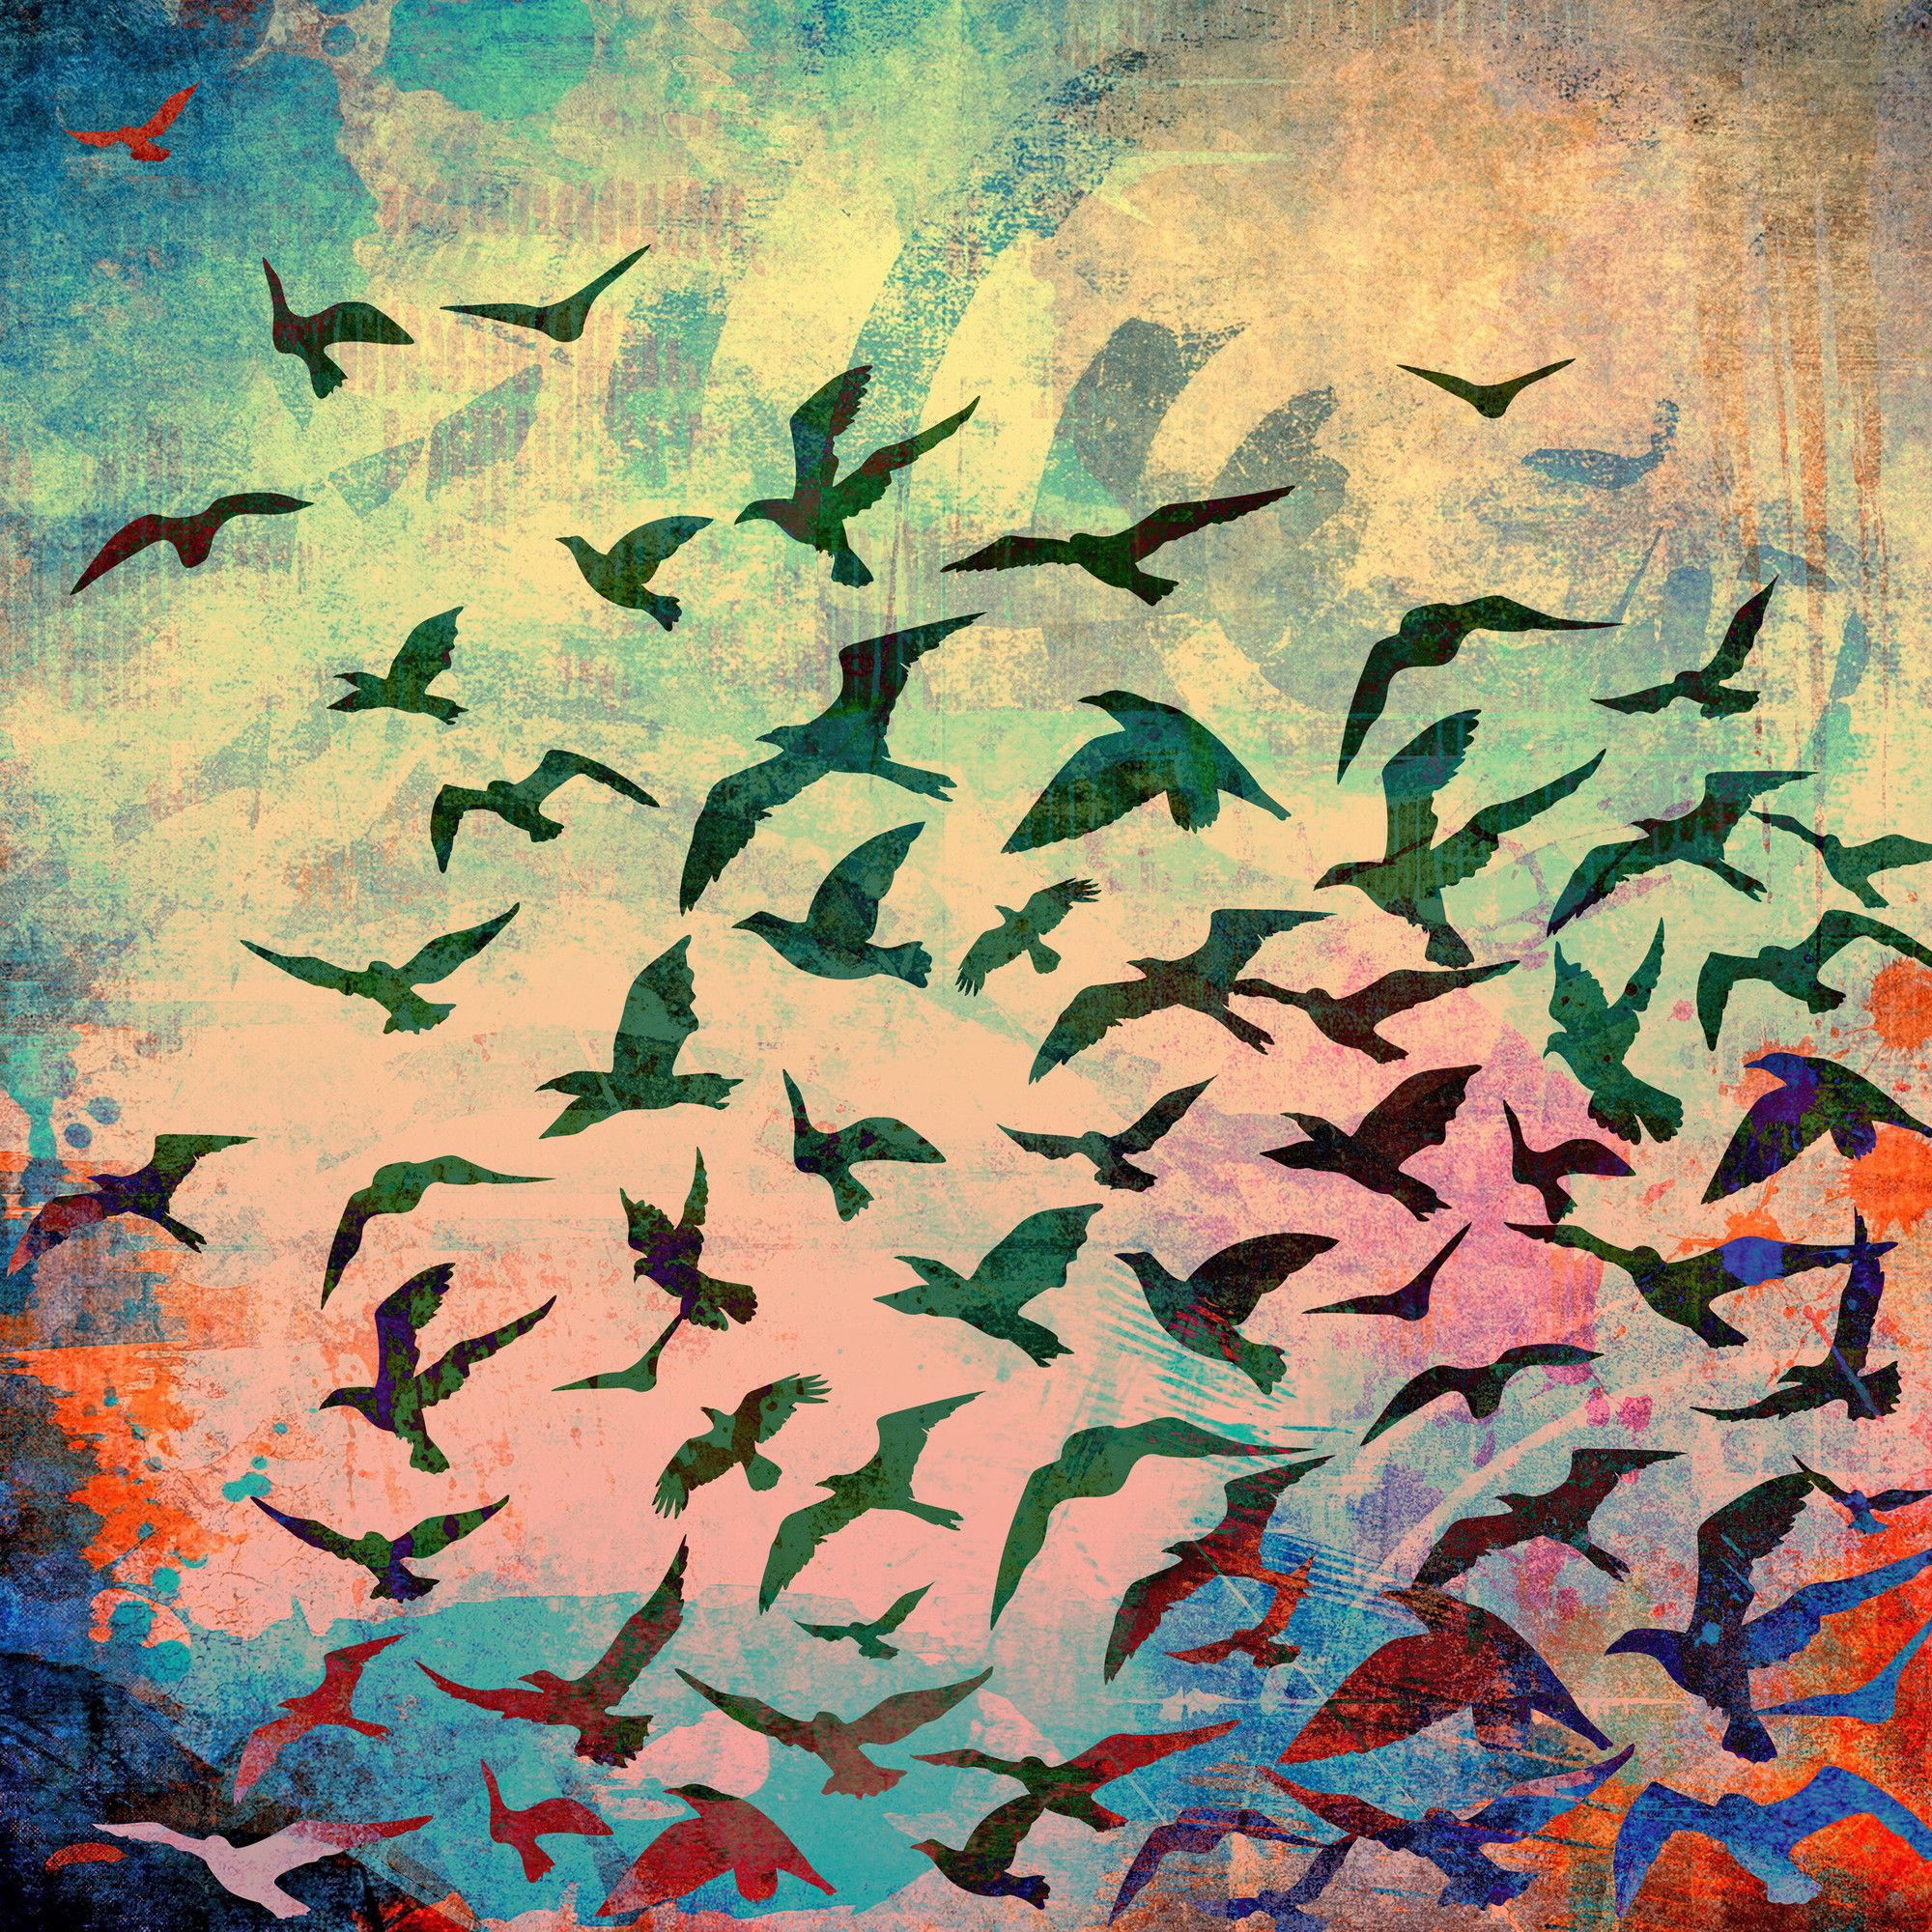 Flock of Seagulls Orange\' Graphic Art on Canvas | Graphic art and ...